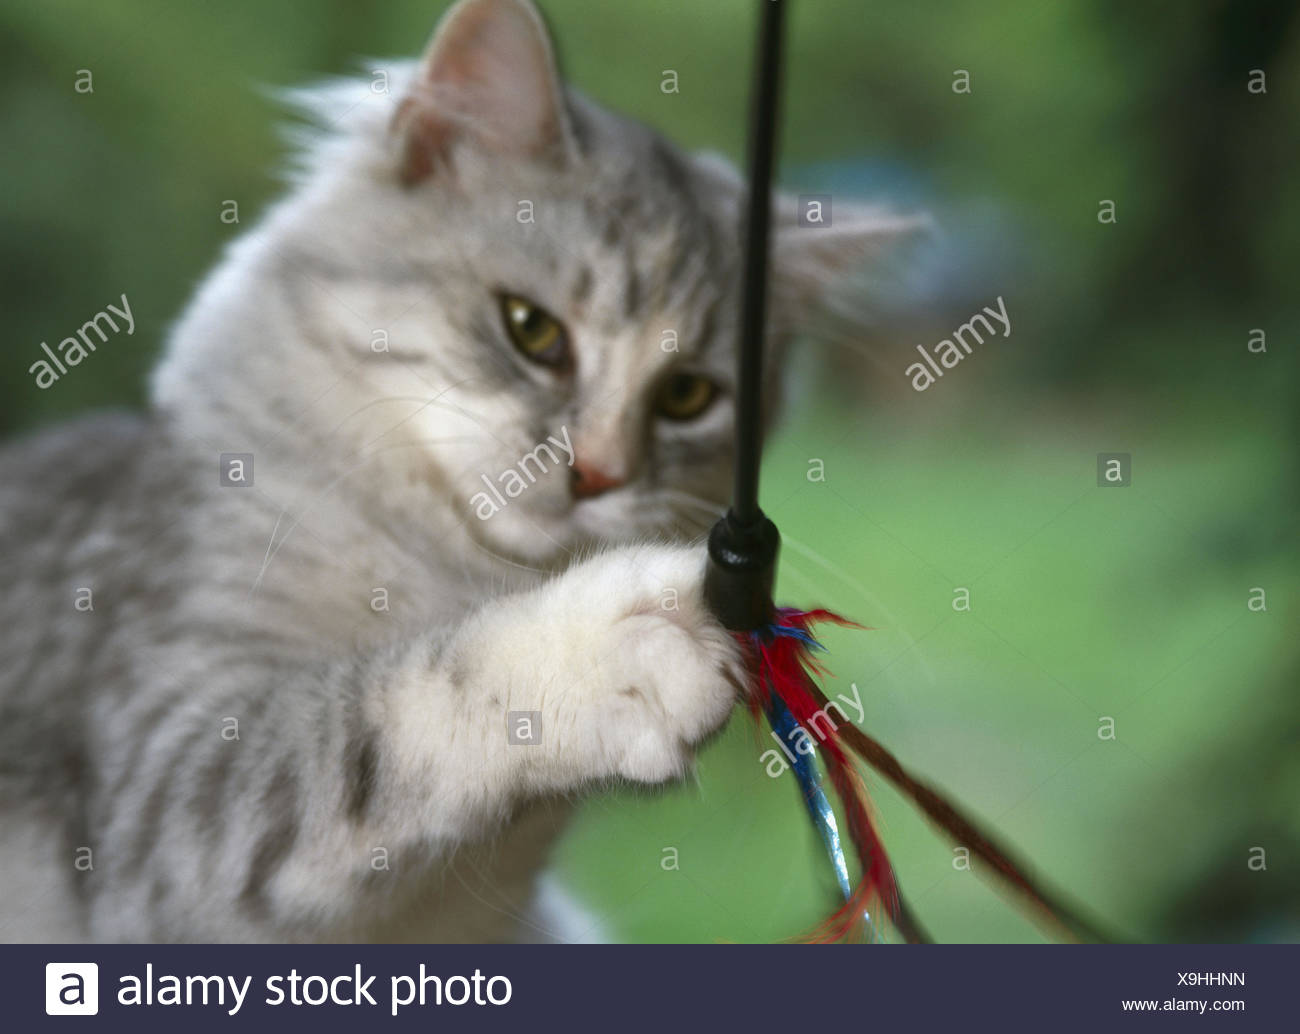 Siberian cat, young, cat's toys, near, kittens, cat, detail, young animal, race, race cat, toys, feathers, cords, play, paw - Stock Image